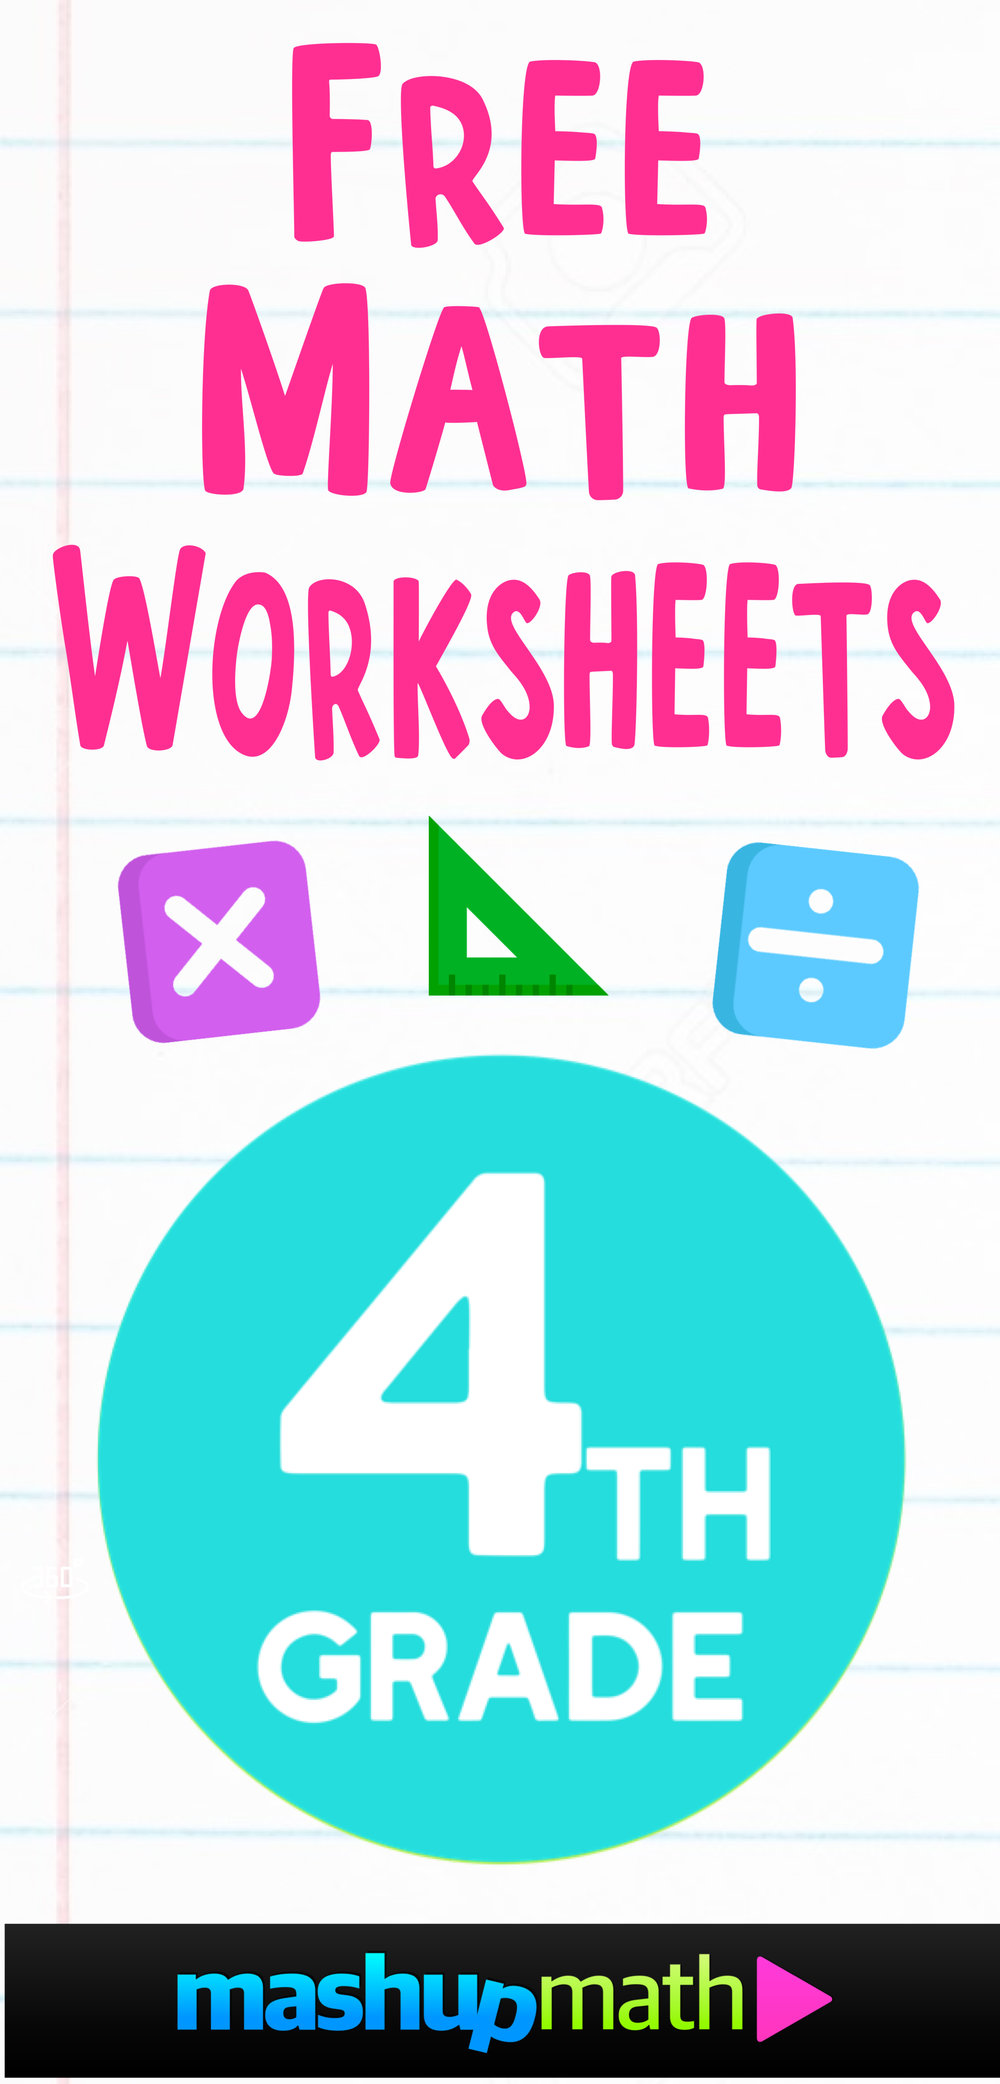 4th Grade Math Worksheets furthermore Multiplication Worksheets   Dynamically Created Multiplication moreover Free 4th Grade Math Worksheets   Mashup Math also 4th Grade Math Worksheets   Free Printables   Education additionally Math Worksheets For 4th Grade Word Problems Grade Division moreover  together with 20  4th grade math worksheet mittens and math two digit also 4th Grade Math Fractions Worksheets Best Math Fractions Worksheets as well  besides Free printable 4th grade math Worksheets  word lists and activities likewise Halloween Math Worksheets 4th Grade Math Multiplication Worksheets besides  together with  further Free 4th Grade Math Worksheets furthermore Math Worksheets 4th Grade Multiplication Math Worksheets For Grade also . on math worksheets for 4th grade